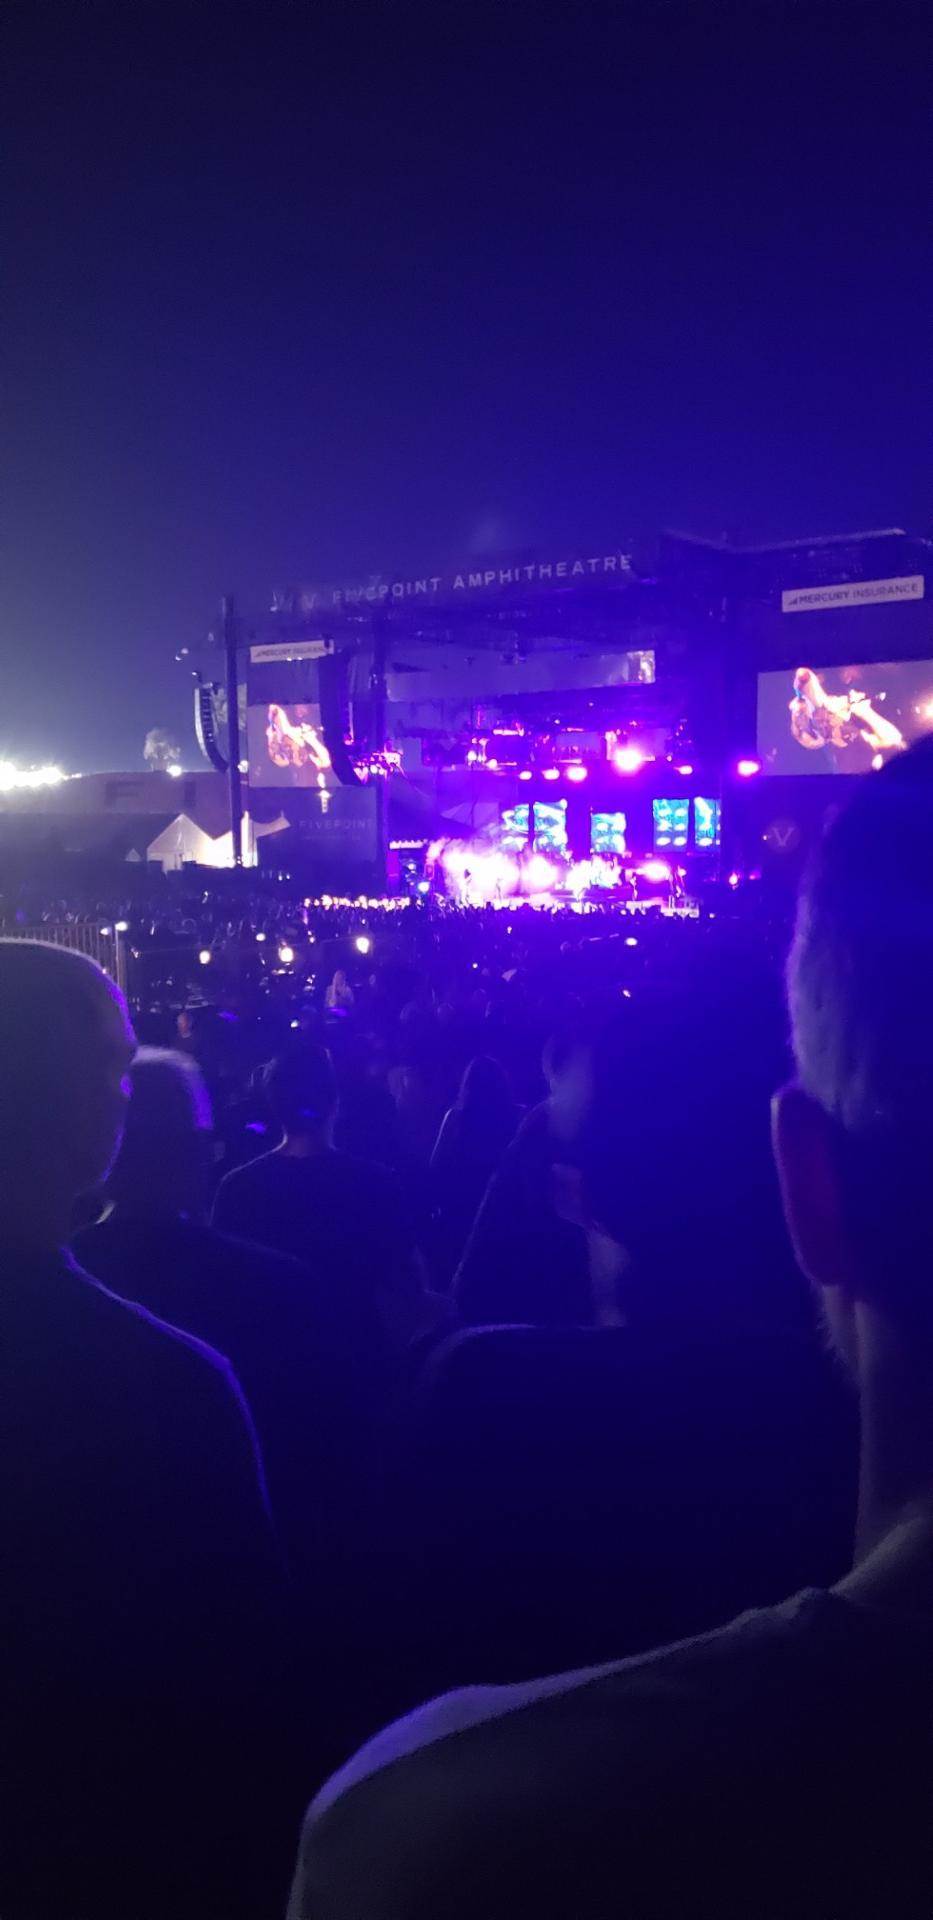 FivePoint Amphitheater Section Terrace 302 Row 8 Seat 8